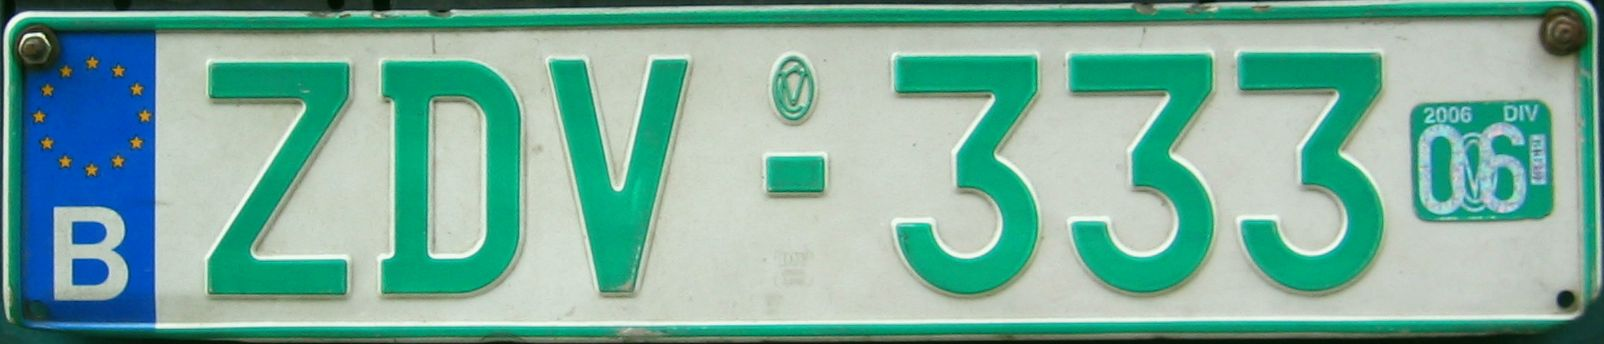 Registration plate maker uk